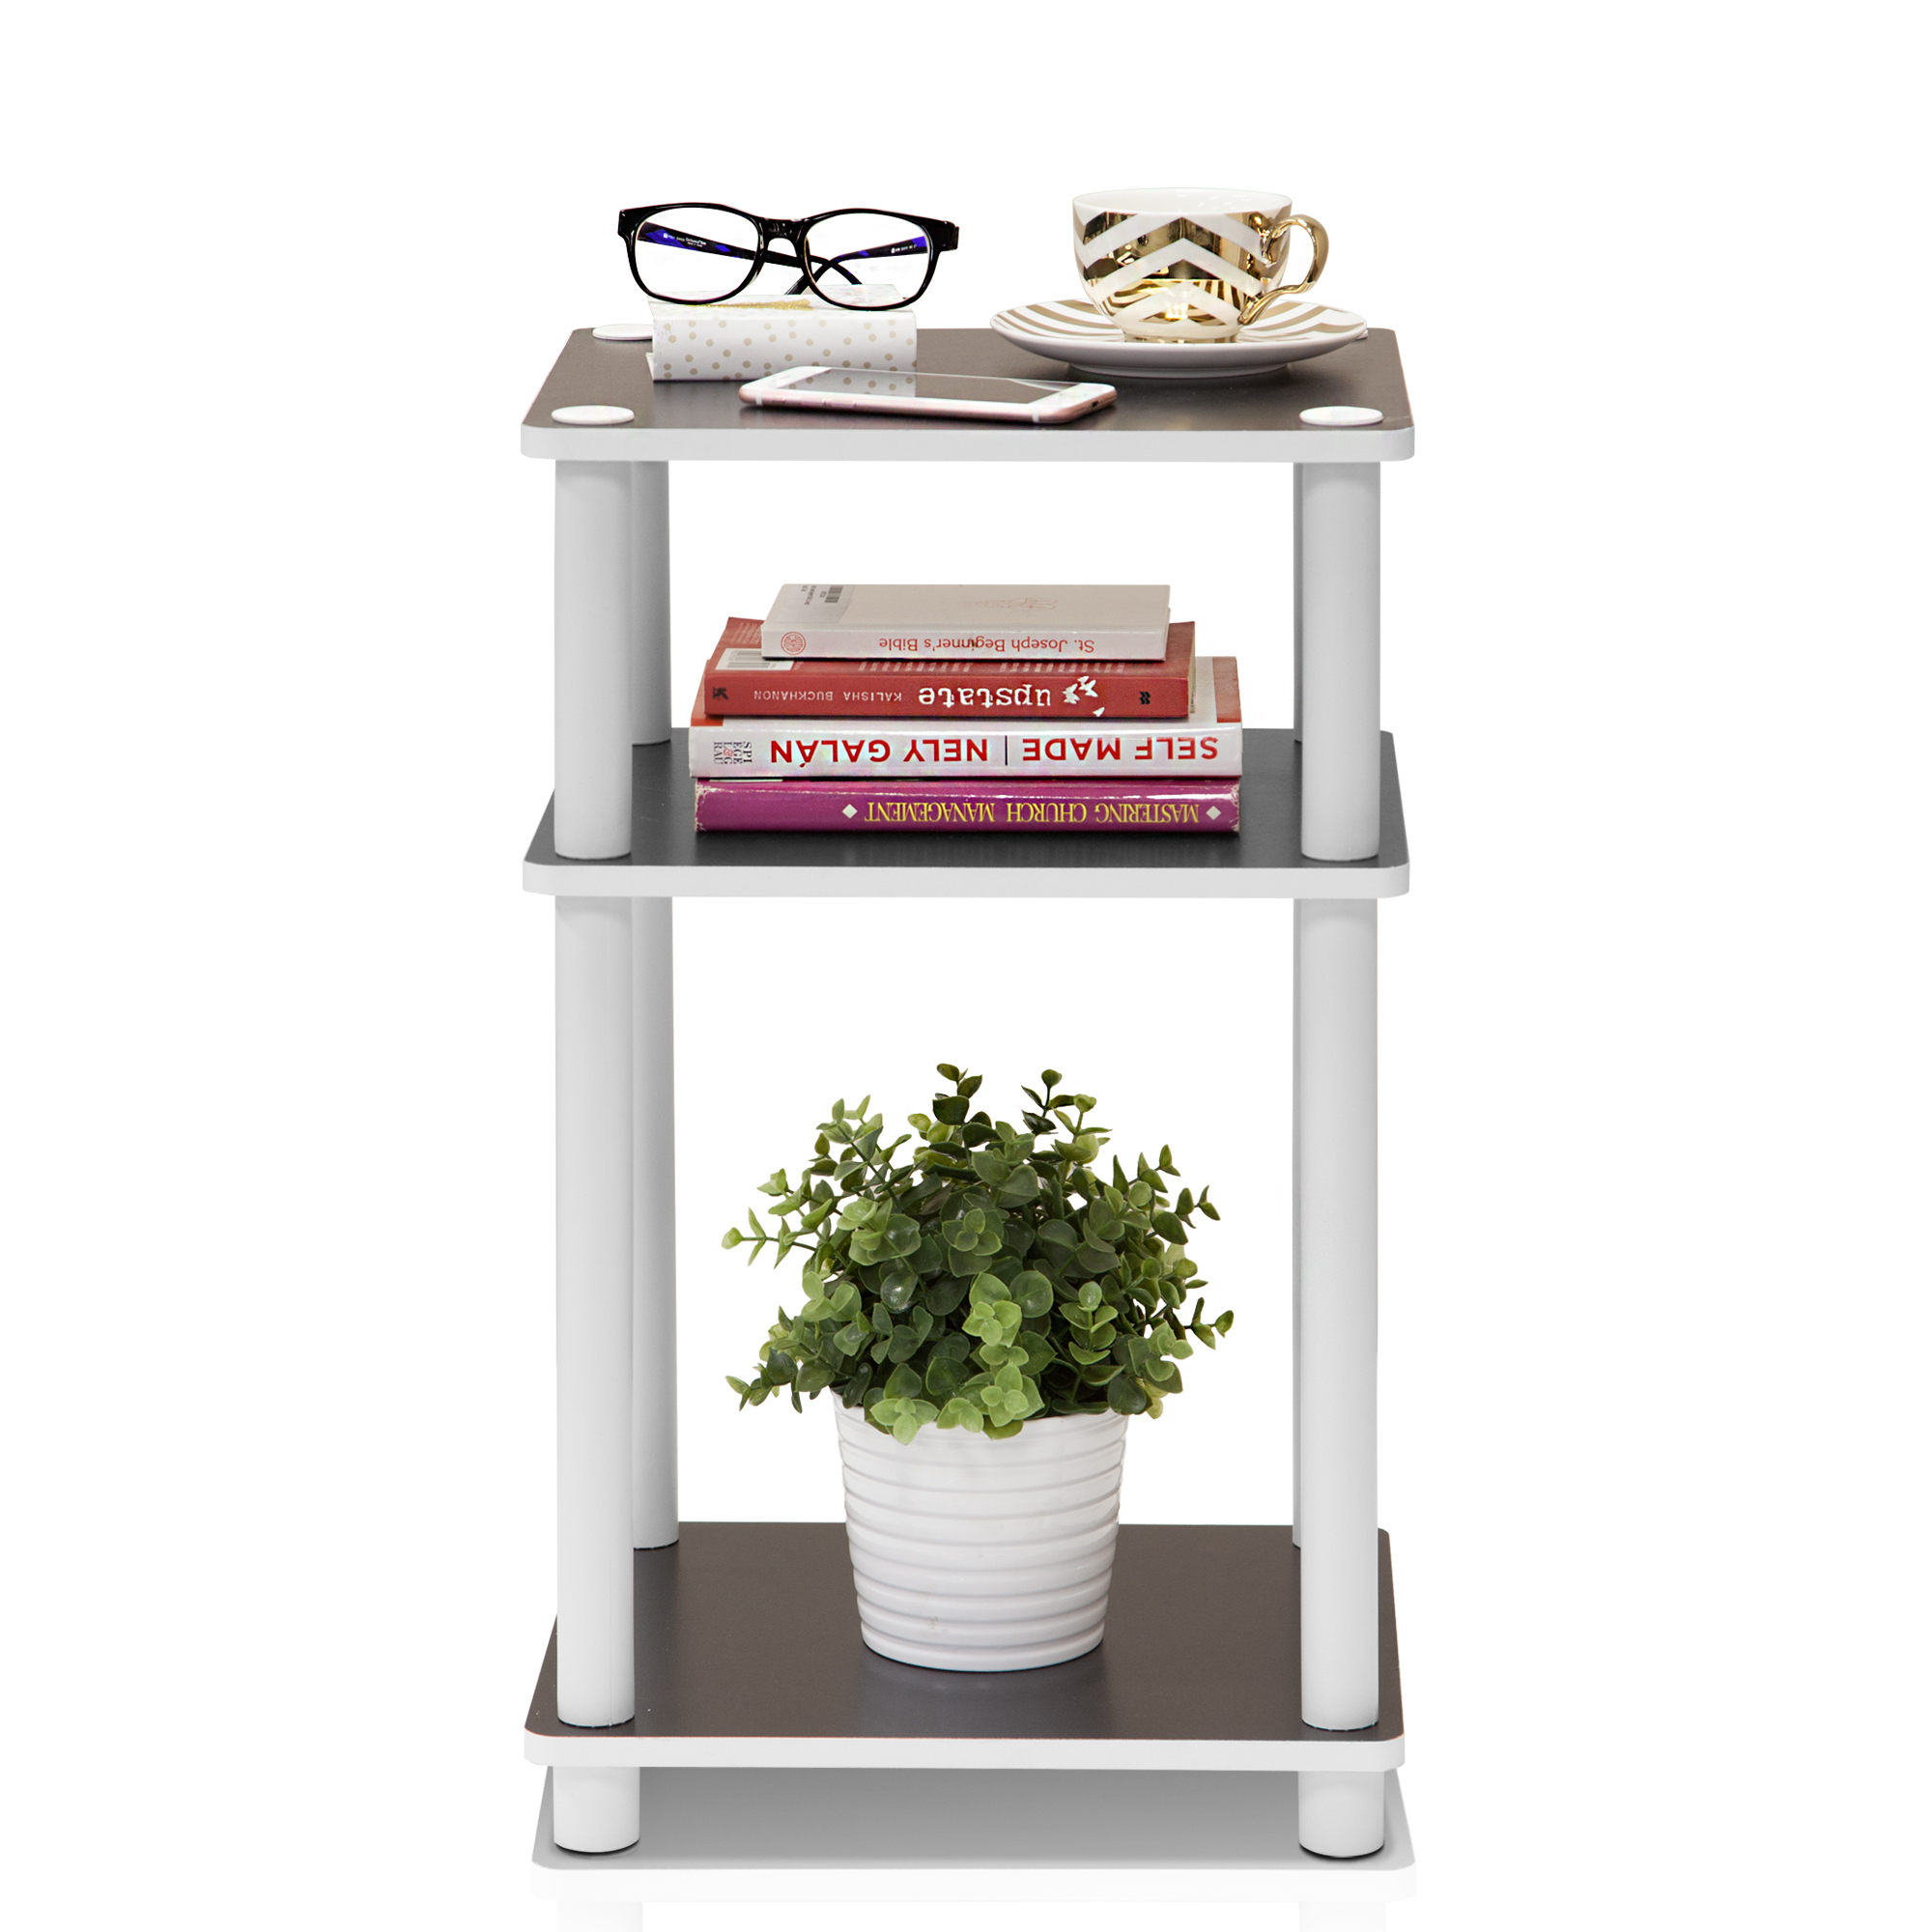 Furinno 11087 Just 3-Tier No-Tools Tube End Table by Furinno